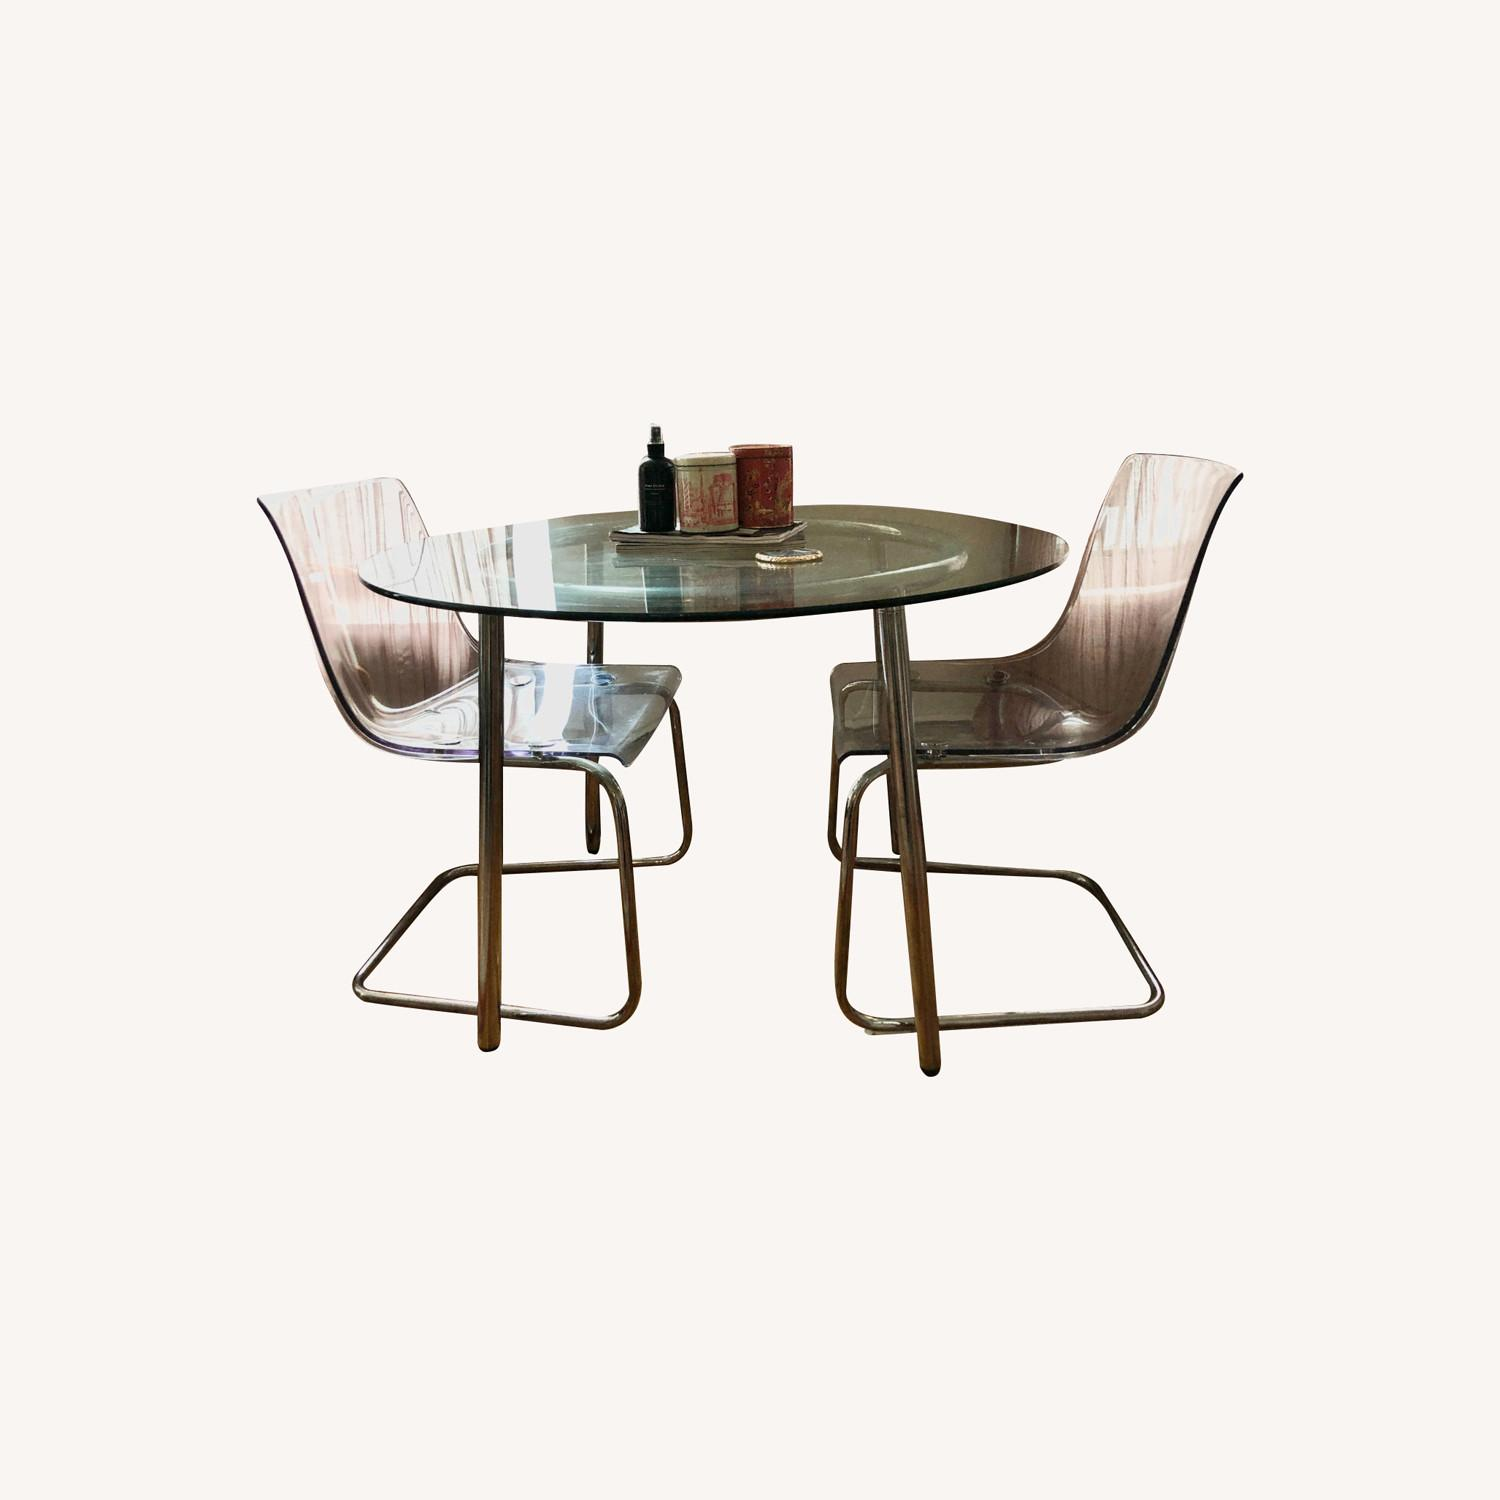 Glass Dining Table With Matching Acrylic Chairs - image-0